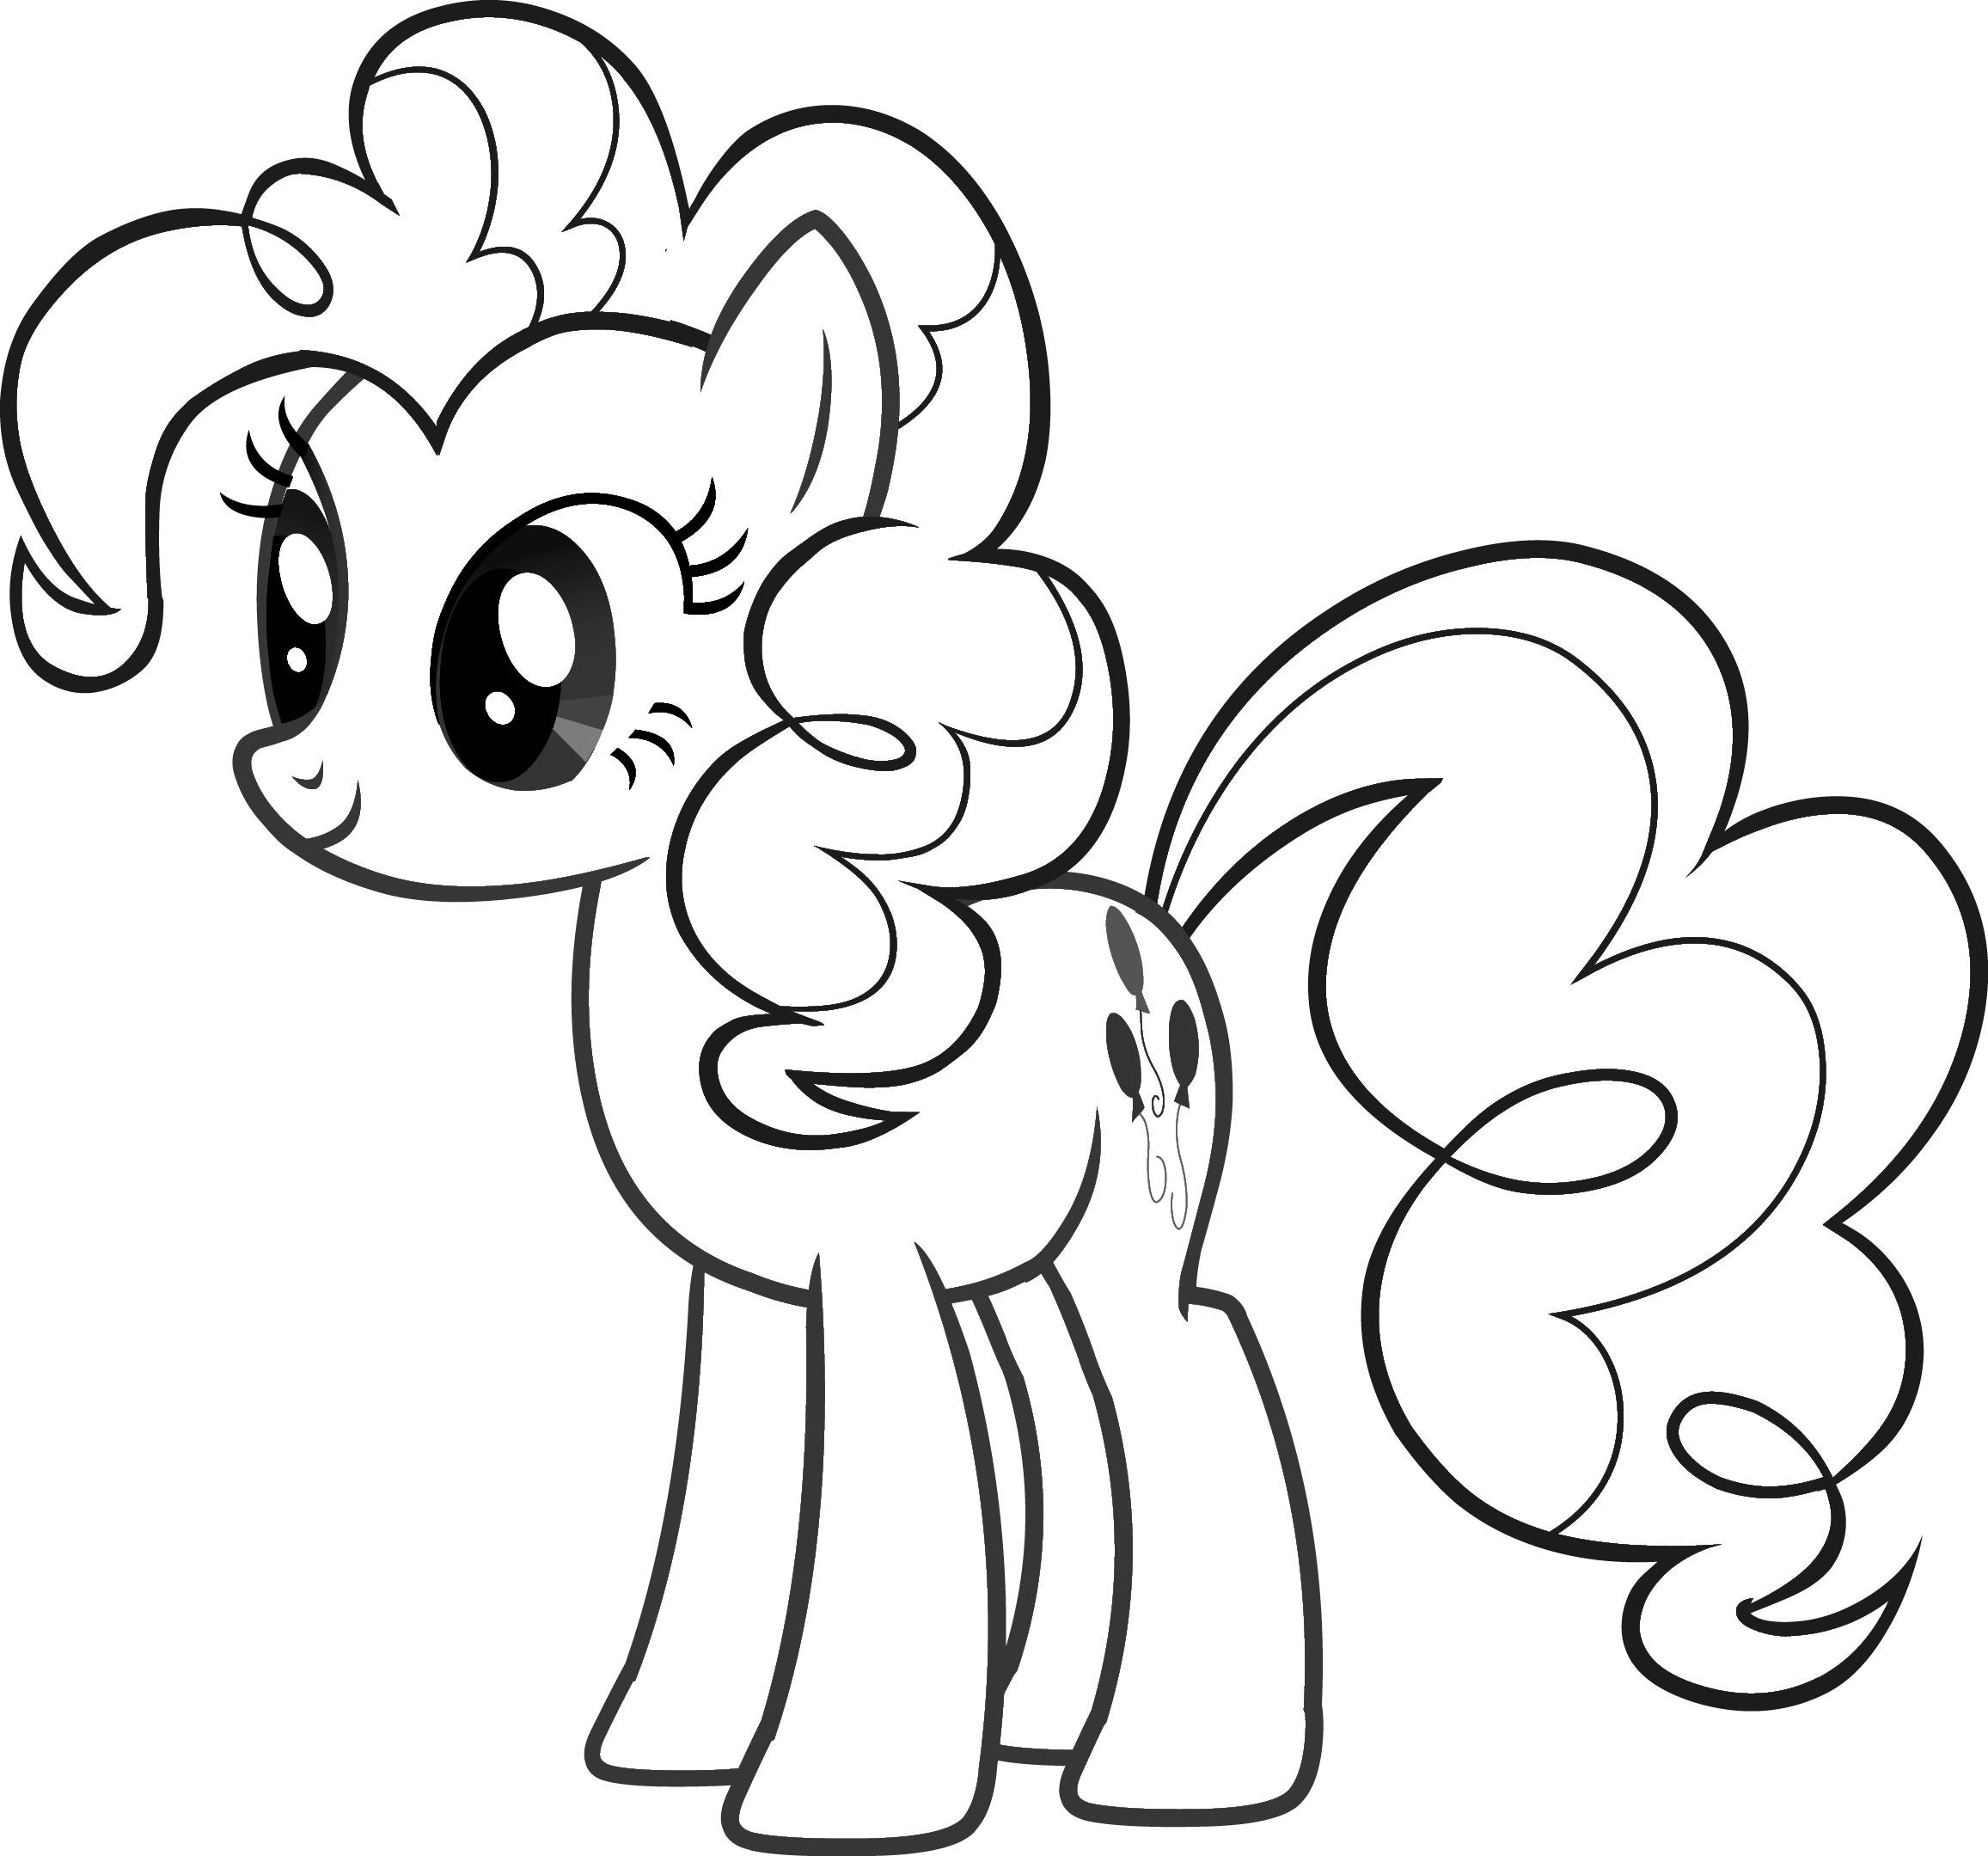 my little pony friendship is magic printable coloring pages get this free printable my little pony friendship is magic is pony coloring pages little magic my printable friendship